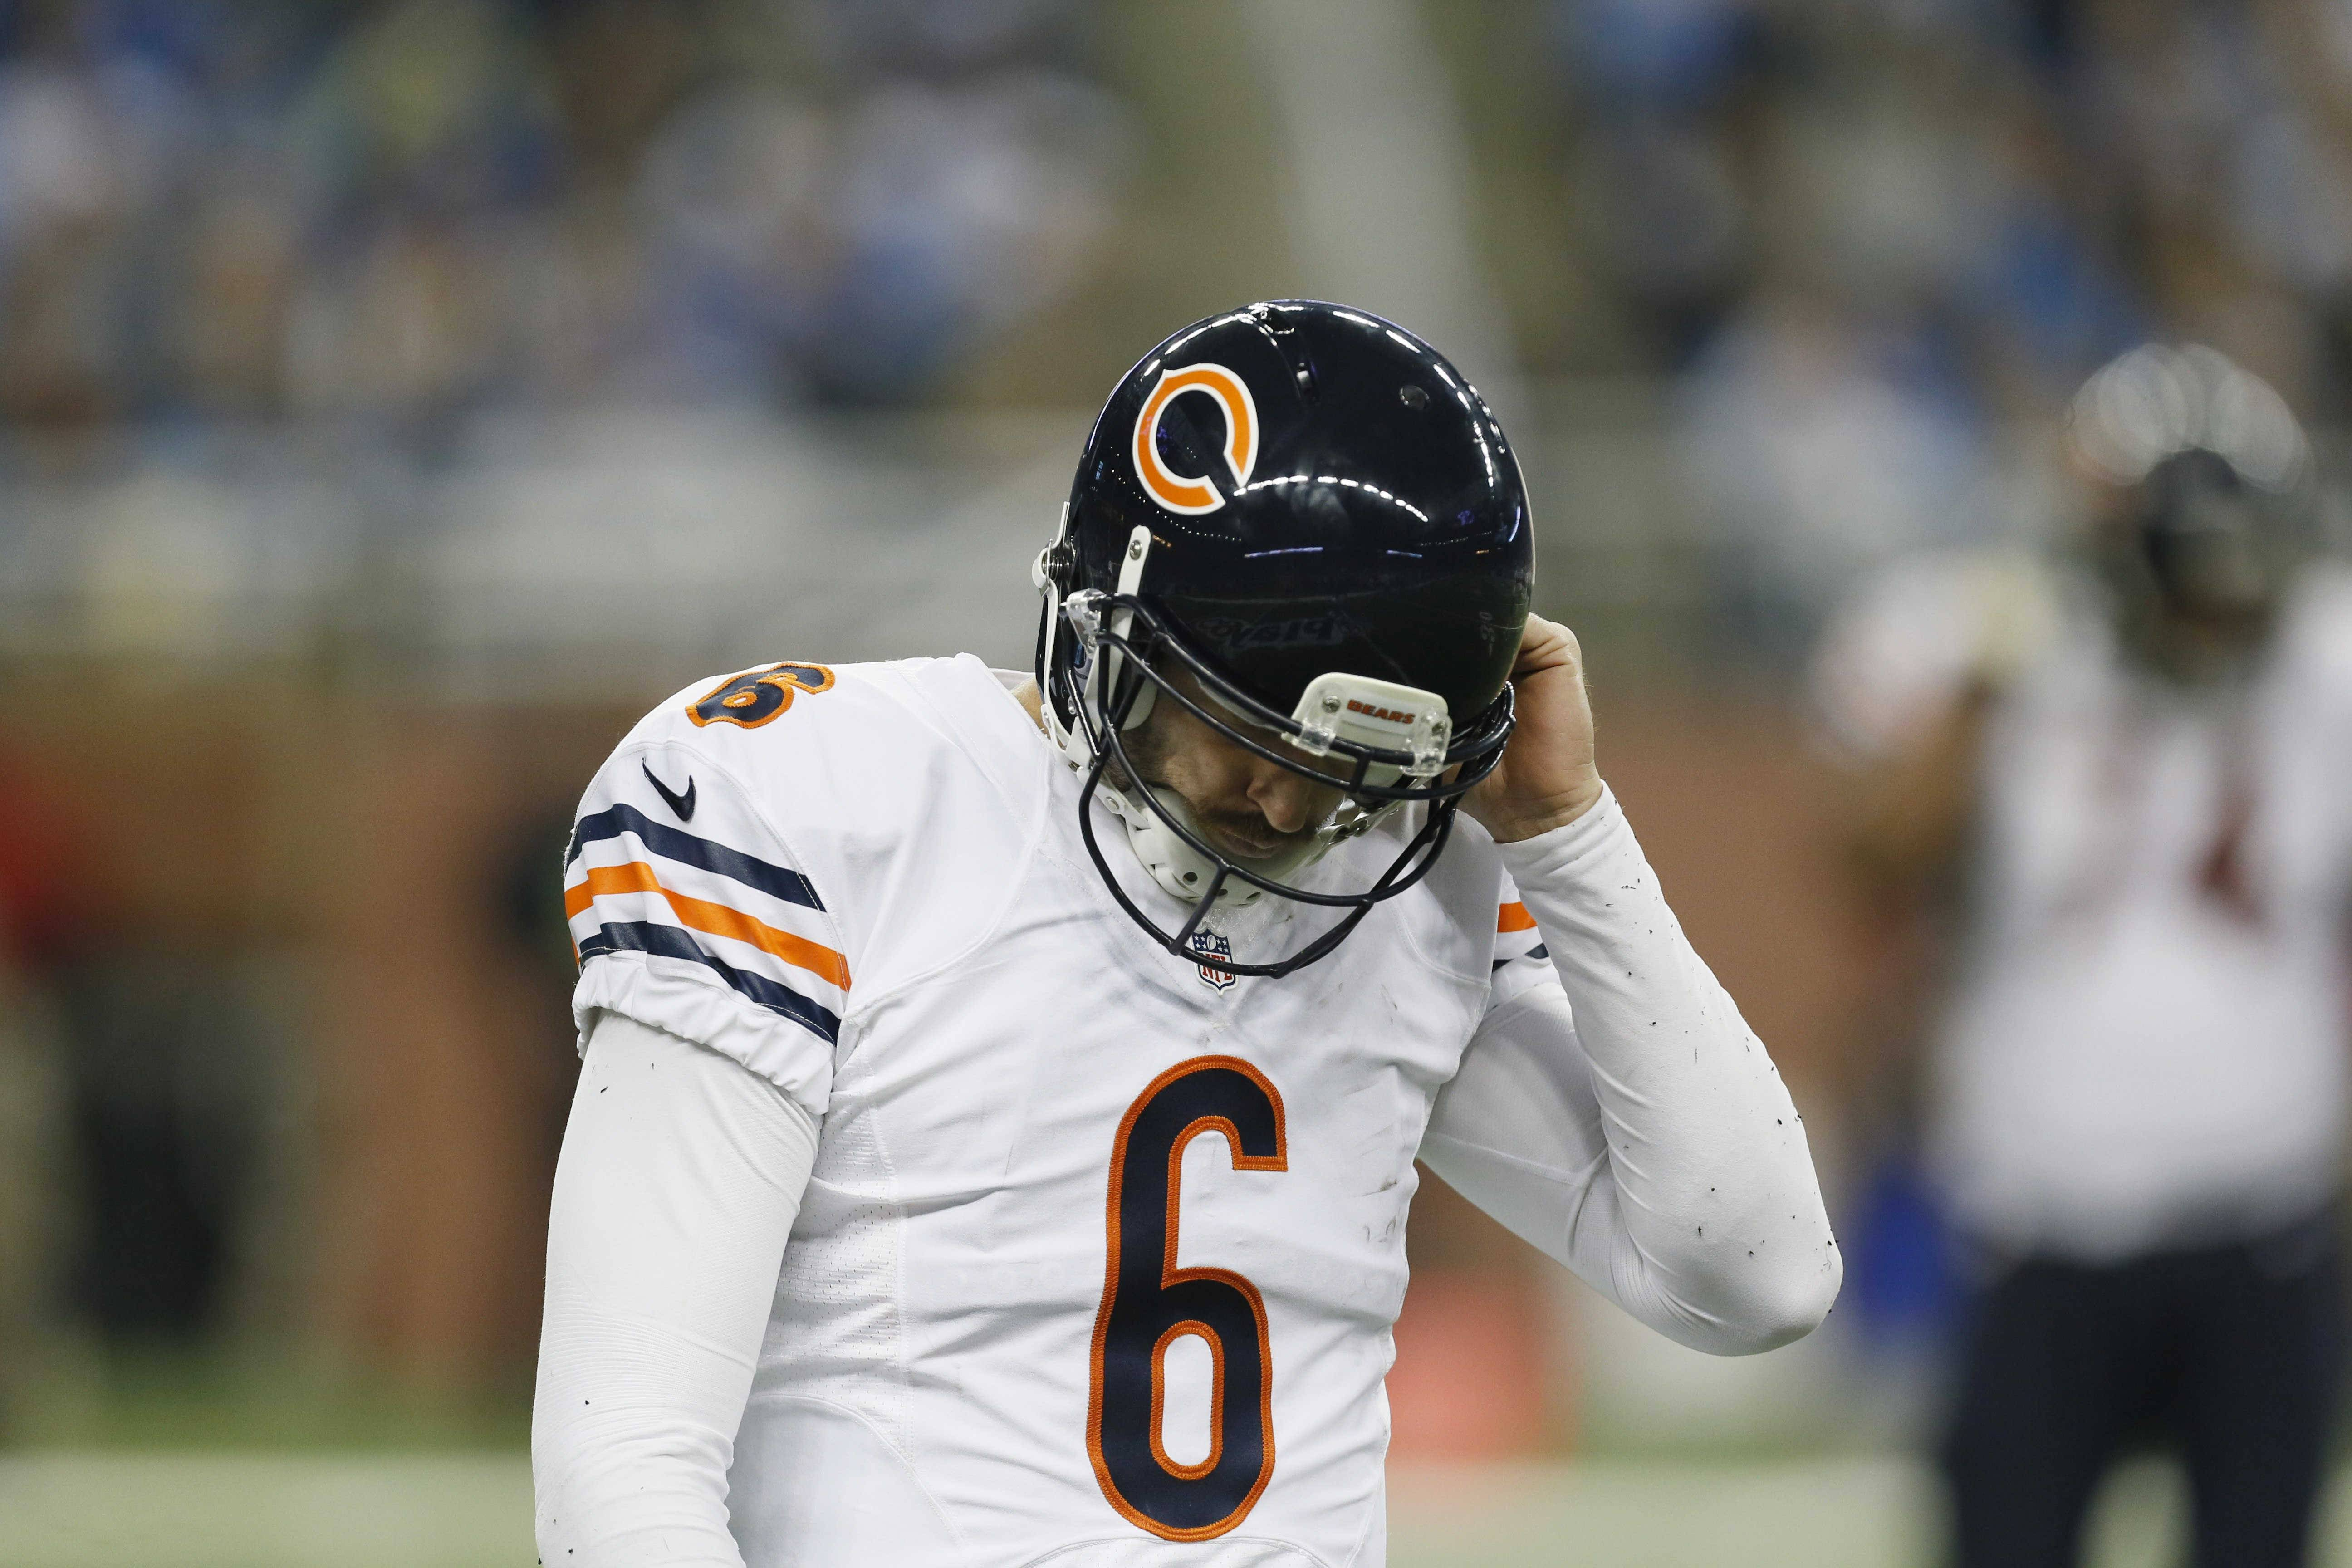 Bears quarterback Jay Cutler walks back to the sideline during the second half of Thursday's 34-17 loss to the Lions in Detroit.